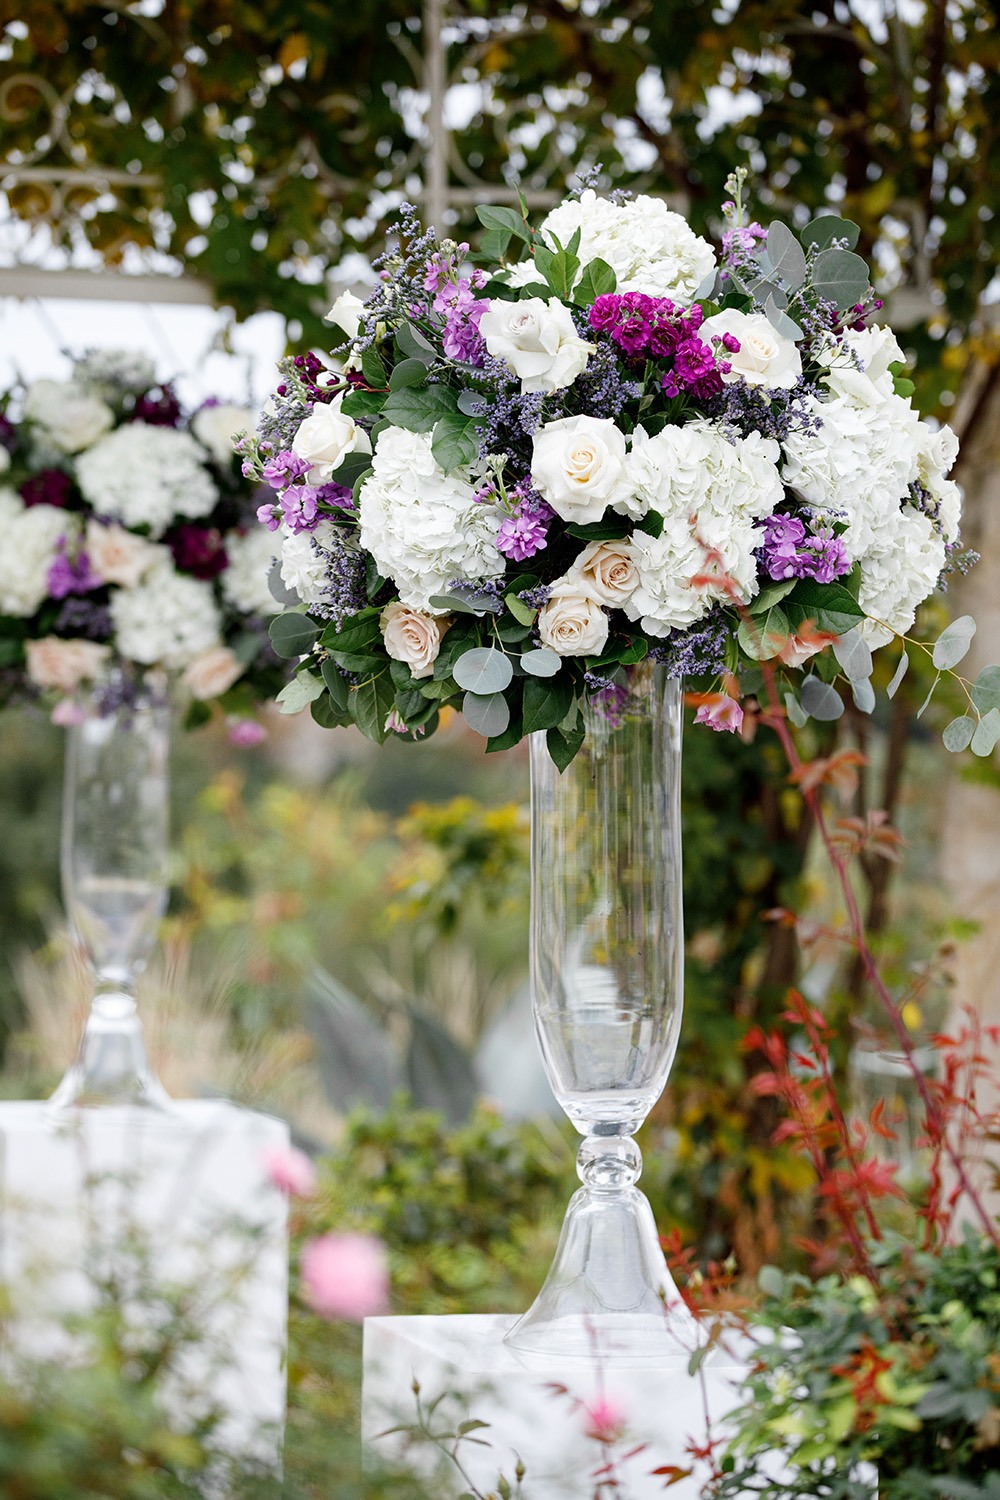 Ceremonial floral arrangement with a mix of white and lilac roses and hydrangeas.